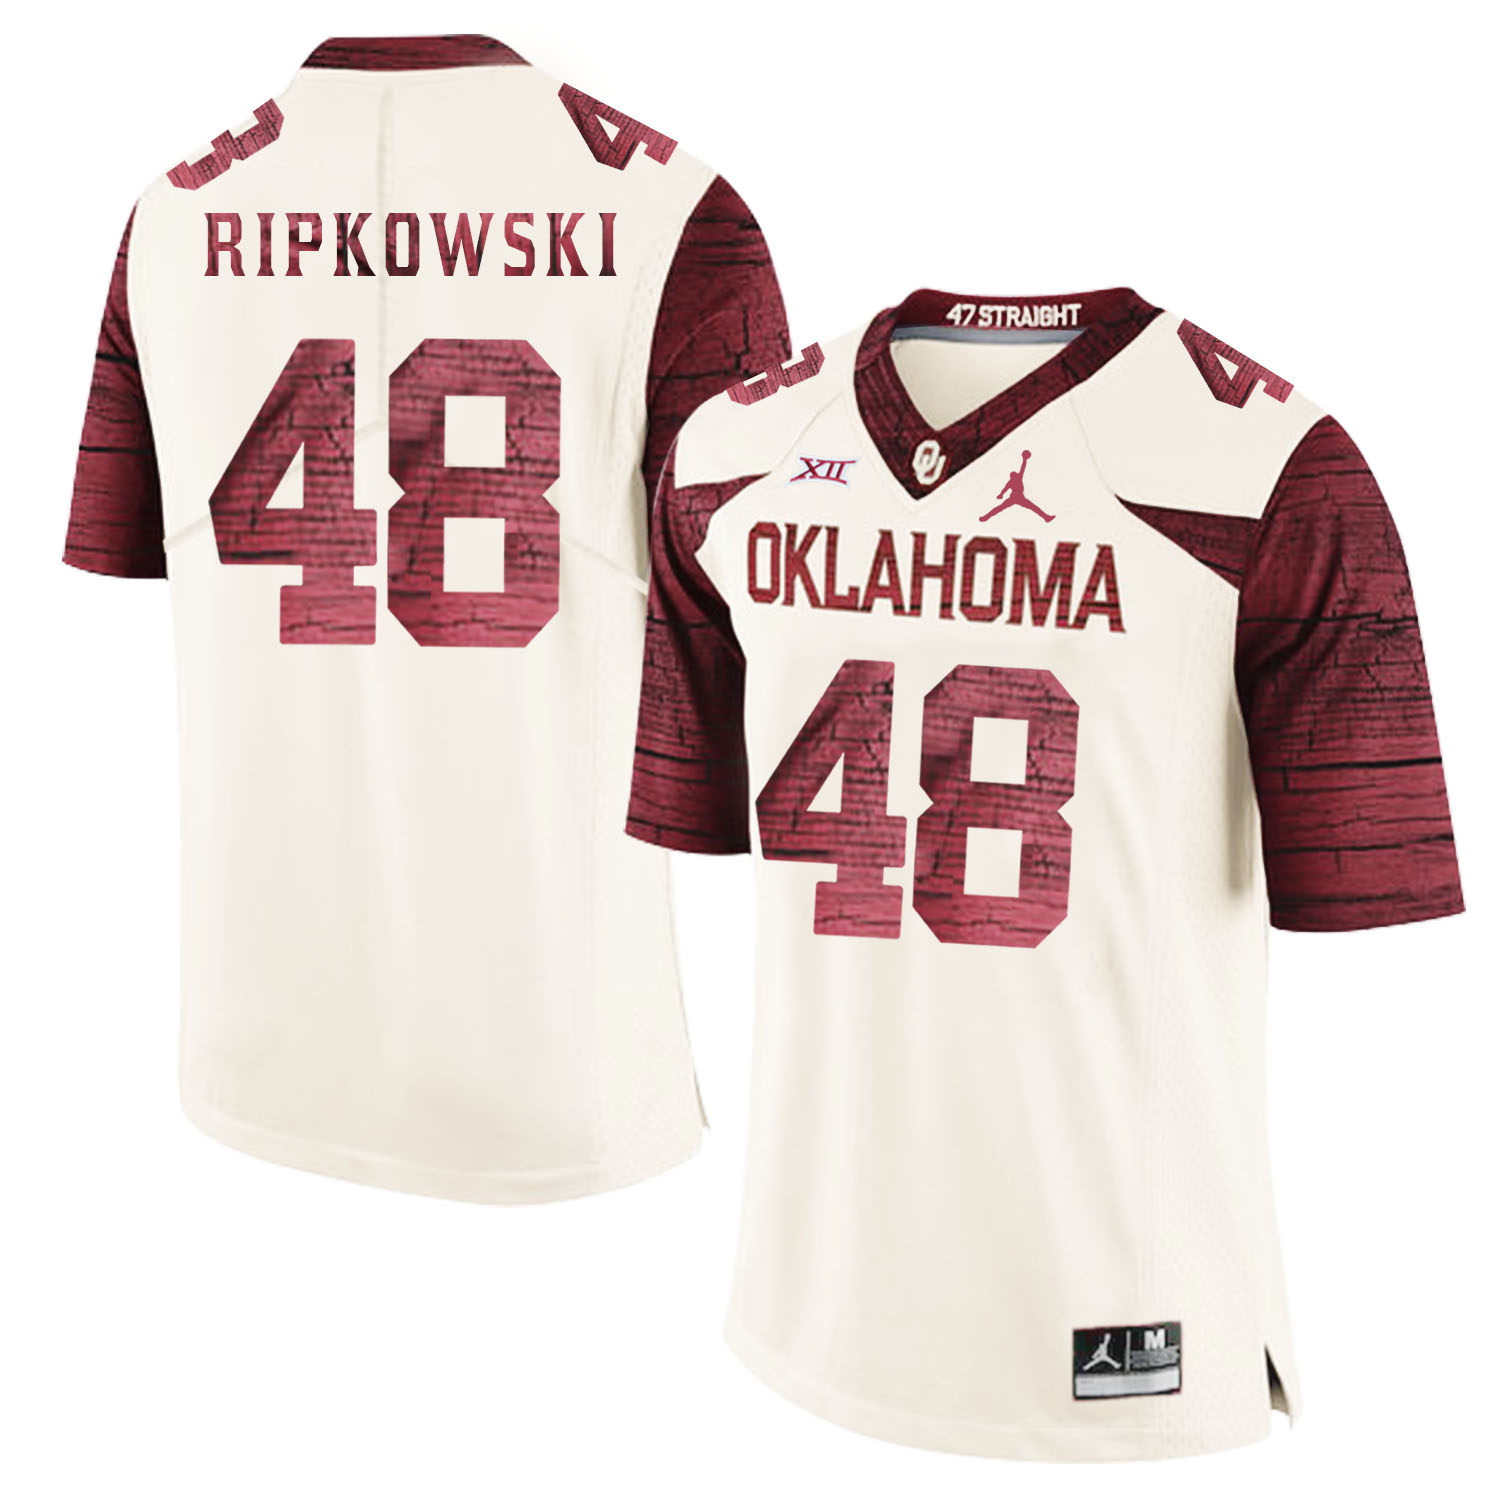 Oklahoma Sooners 48 Aaron Ripkowski White 47 Game Winning Streak College Football Jersey